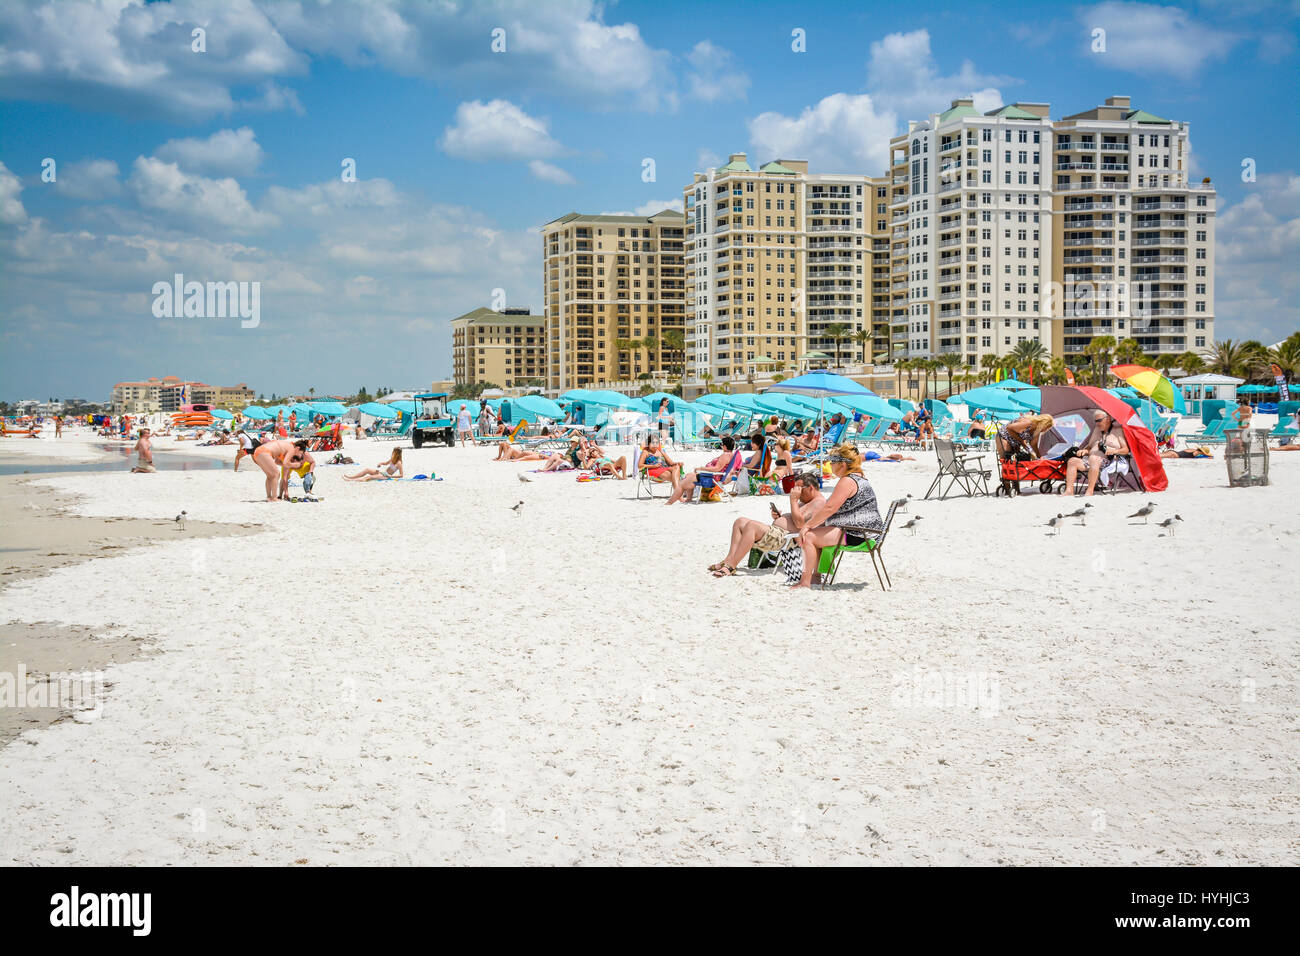 Popular white sand beach full of umbreallas, baech chairs & people enjoy the sunny day on Clearwater Beach, - Stock Image